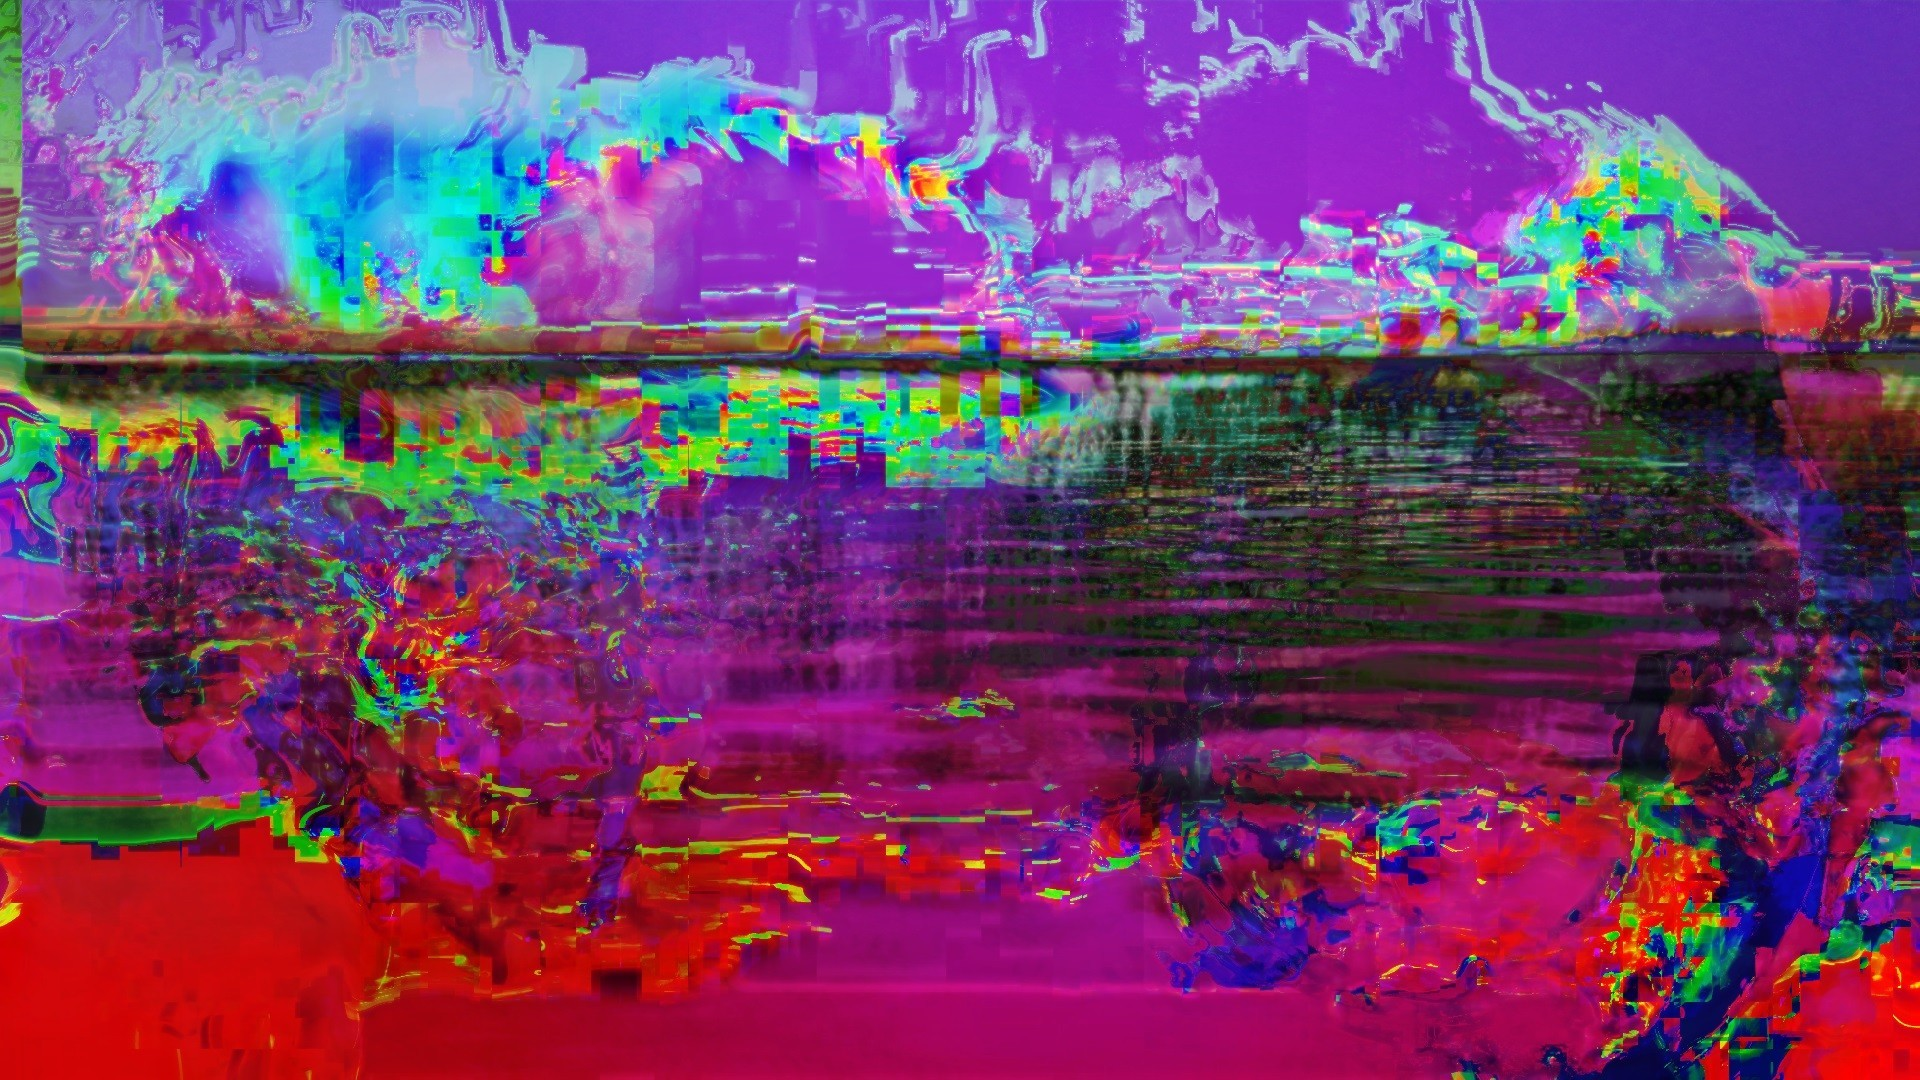 General glitch art LSD abstract